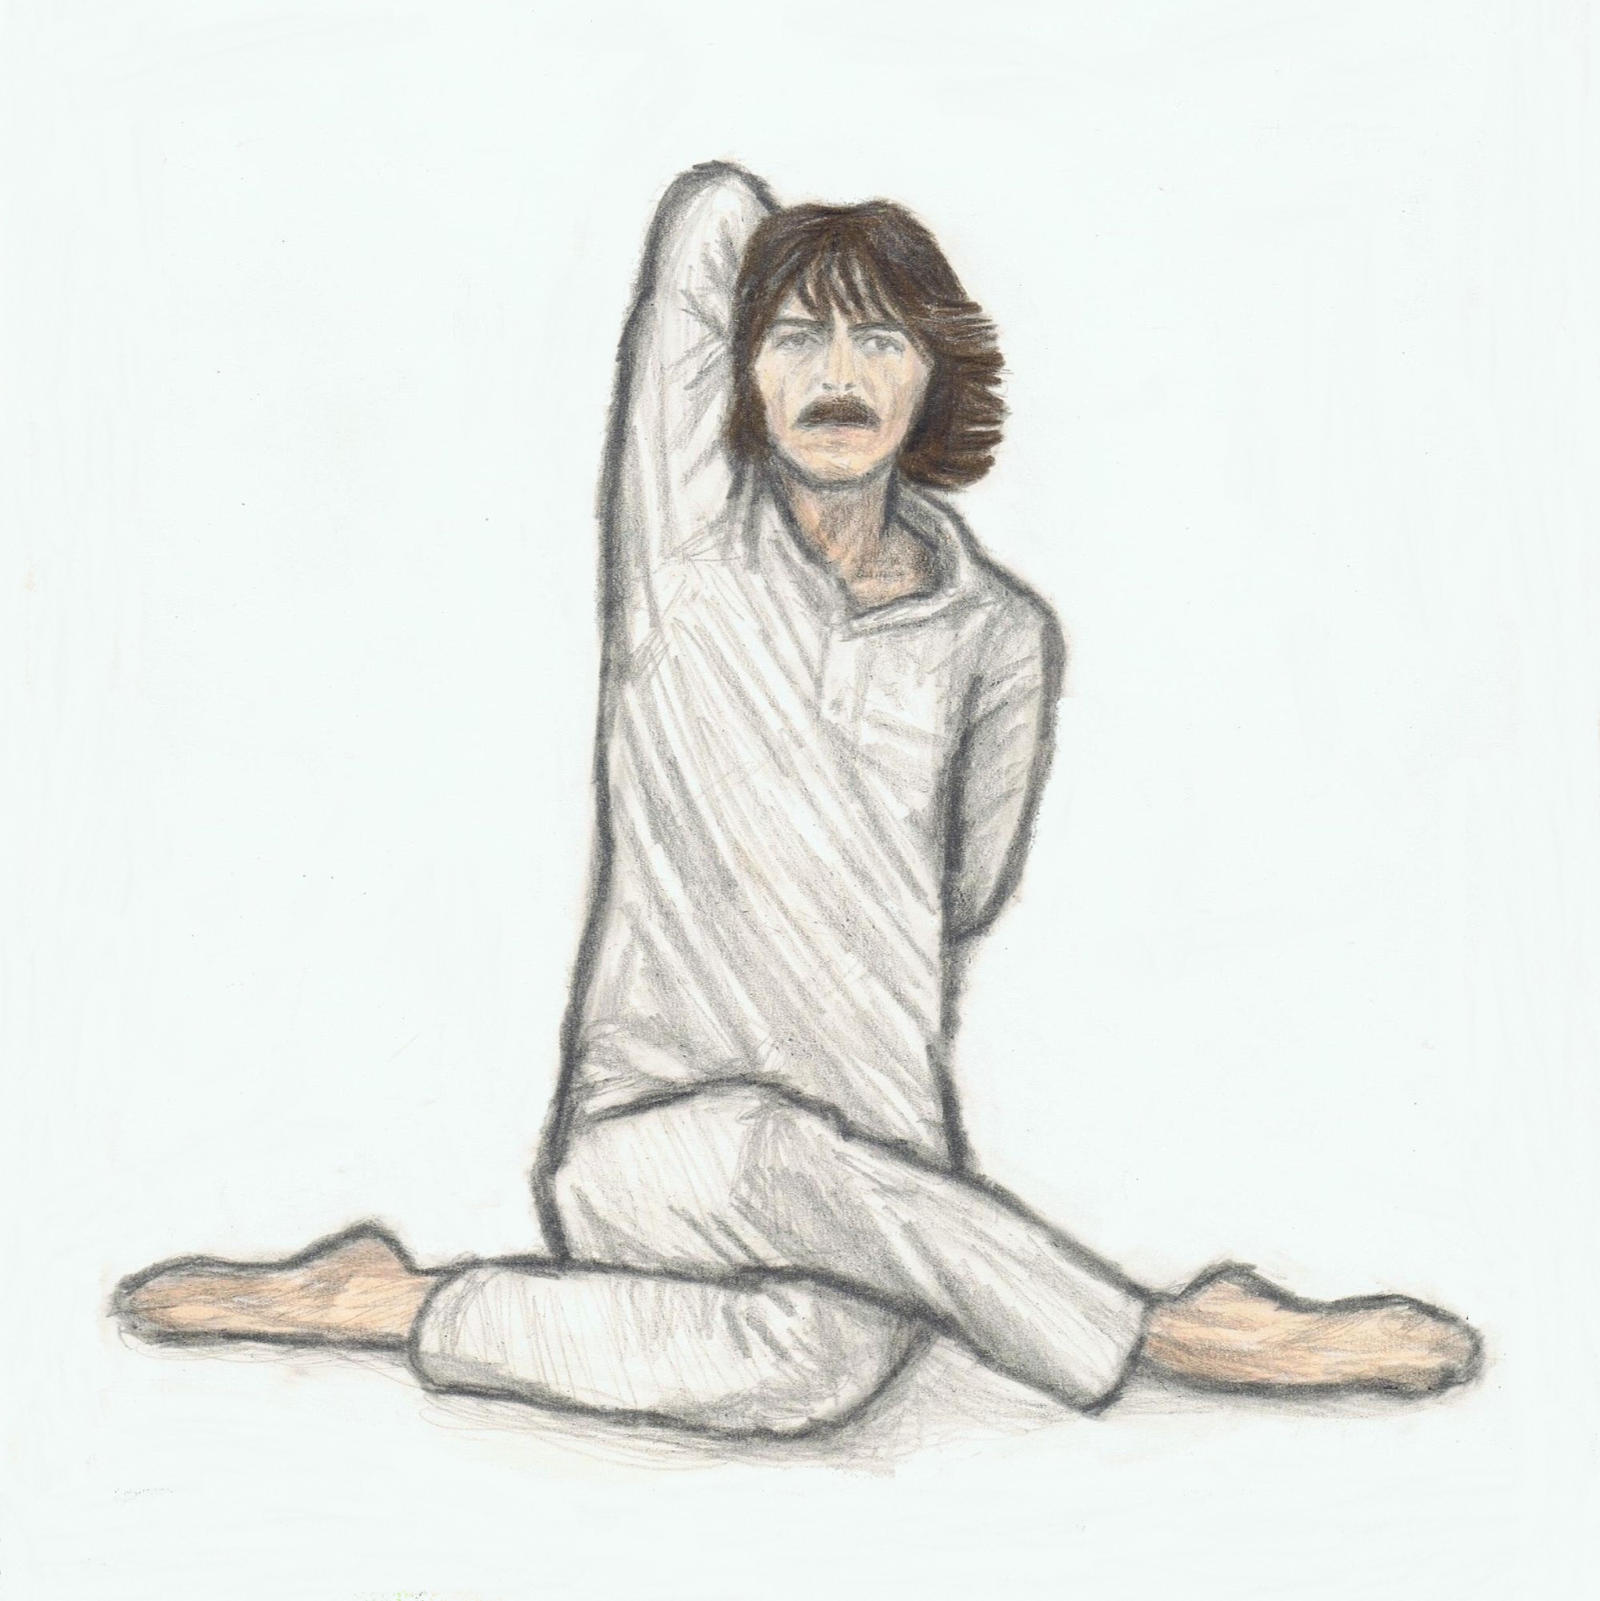 George Harrison doing yoga (cow face pose) by gagambo